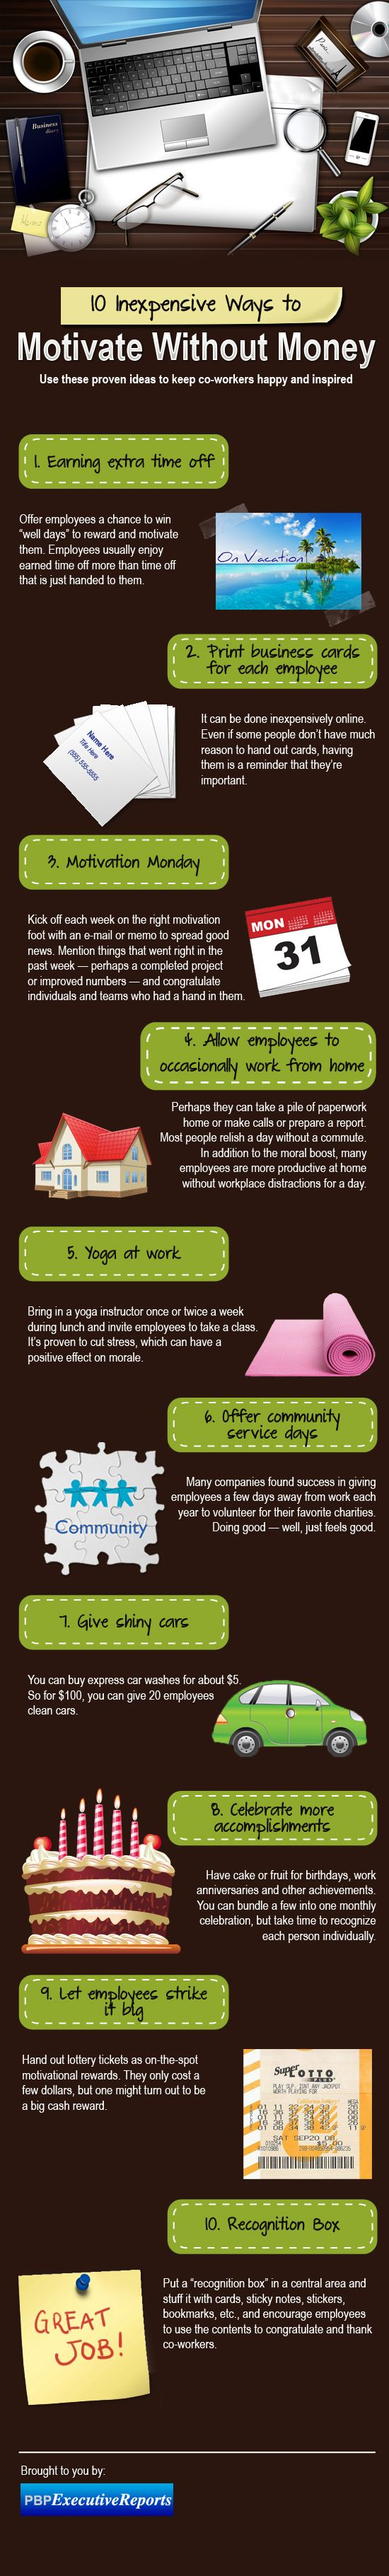 10 Inexpensive ways to motivate employees [Infographic]